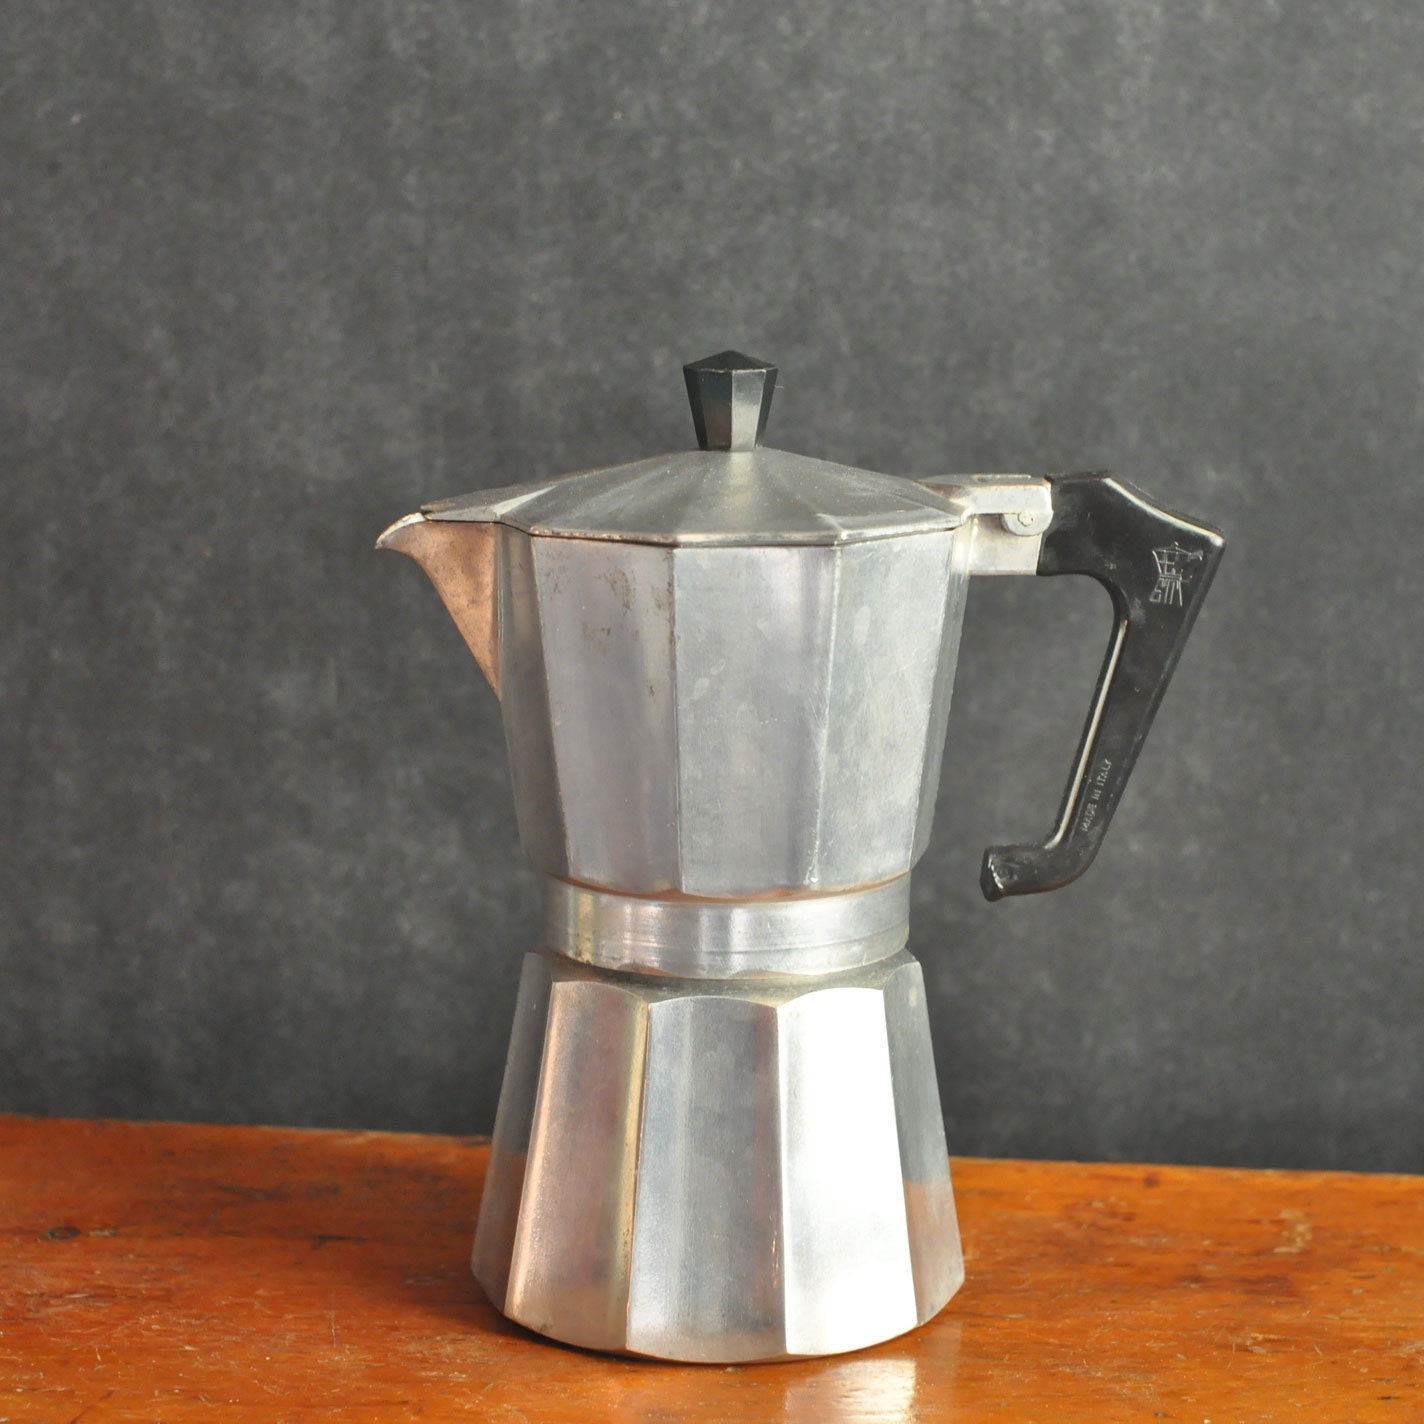 Italian Coffee Maker Best Coffee : Vintage Italian Stovetop Coffee Espresso Maker by drowsySwords